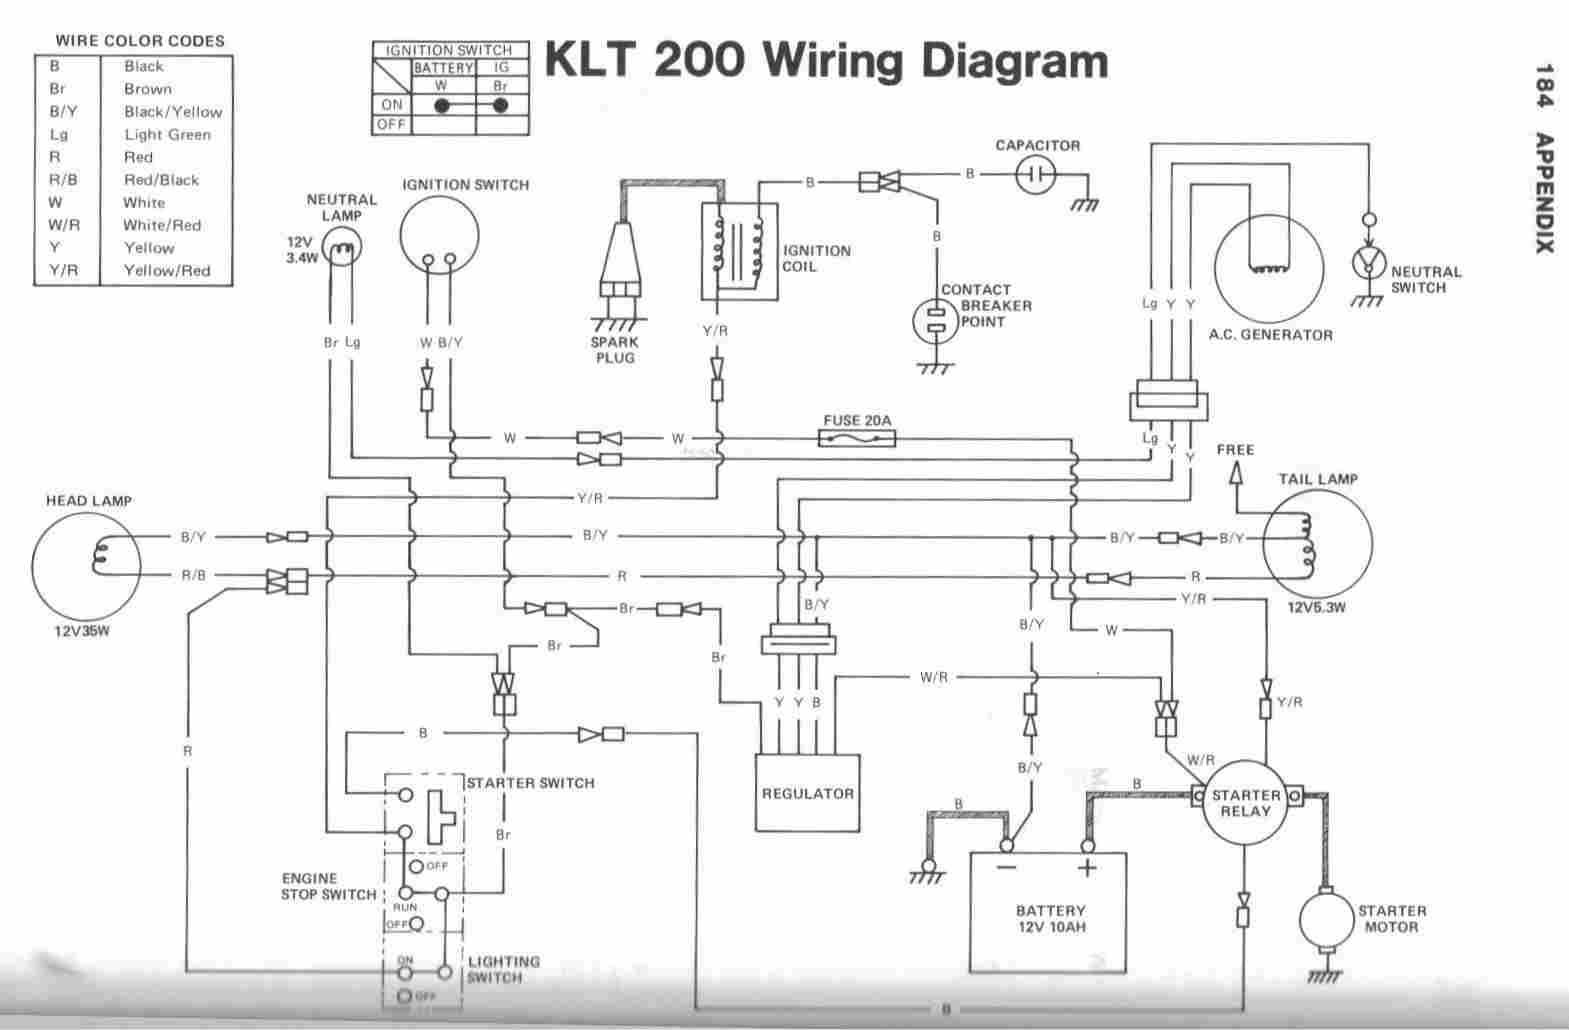 residential electrical wiring diagrams pdf easy routing cool residential electrical wiring diagrams pdf easy routing